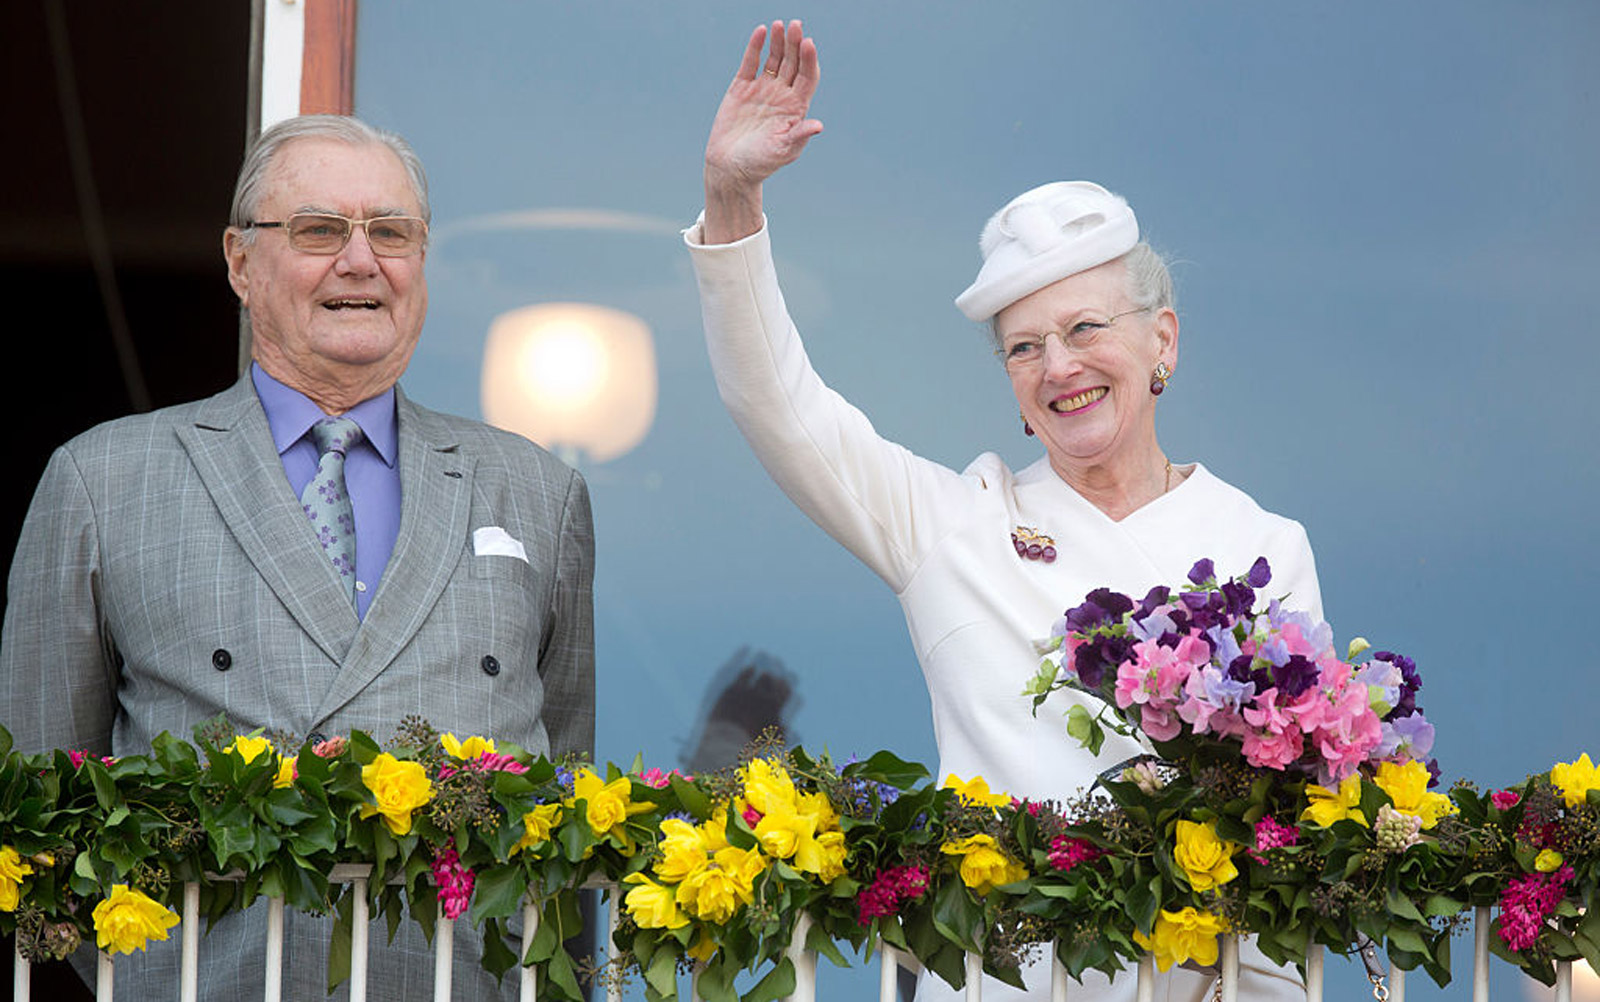 Why Prince Henrik of Denmark Doesn't Want to Be Buried Next to His Wife, the Queen